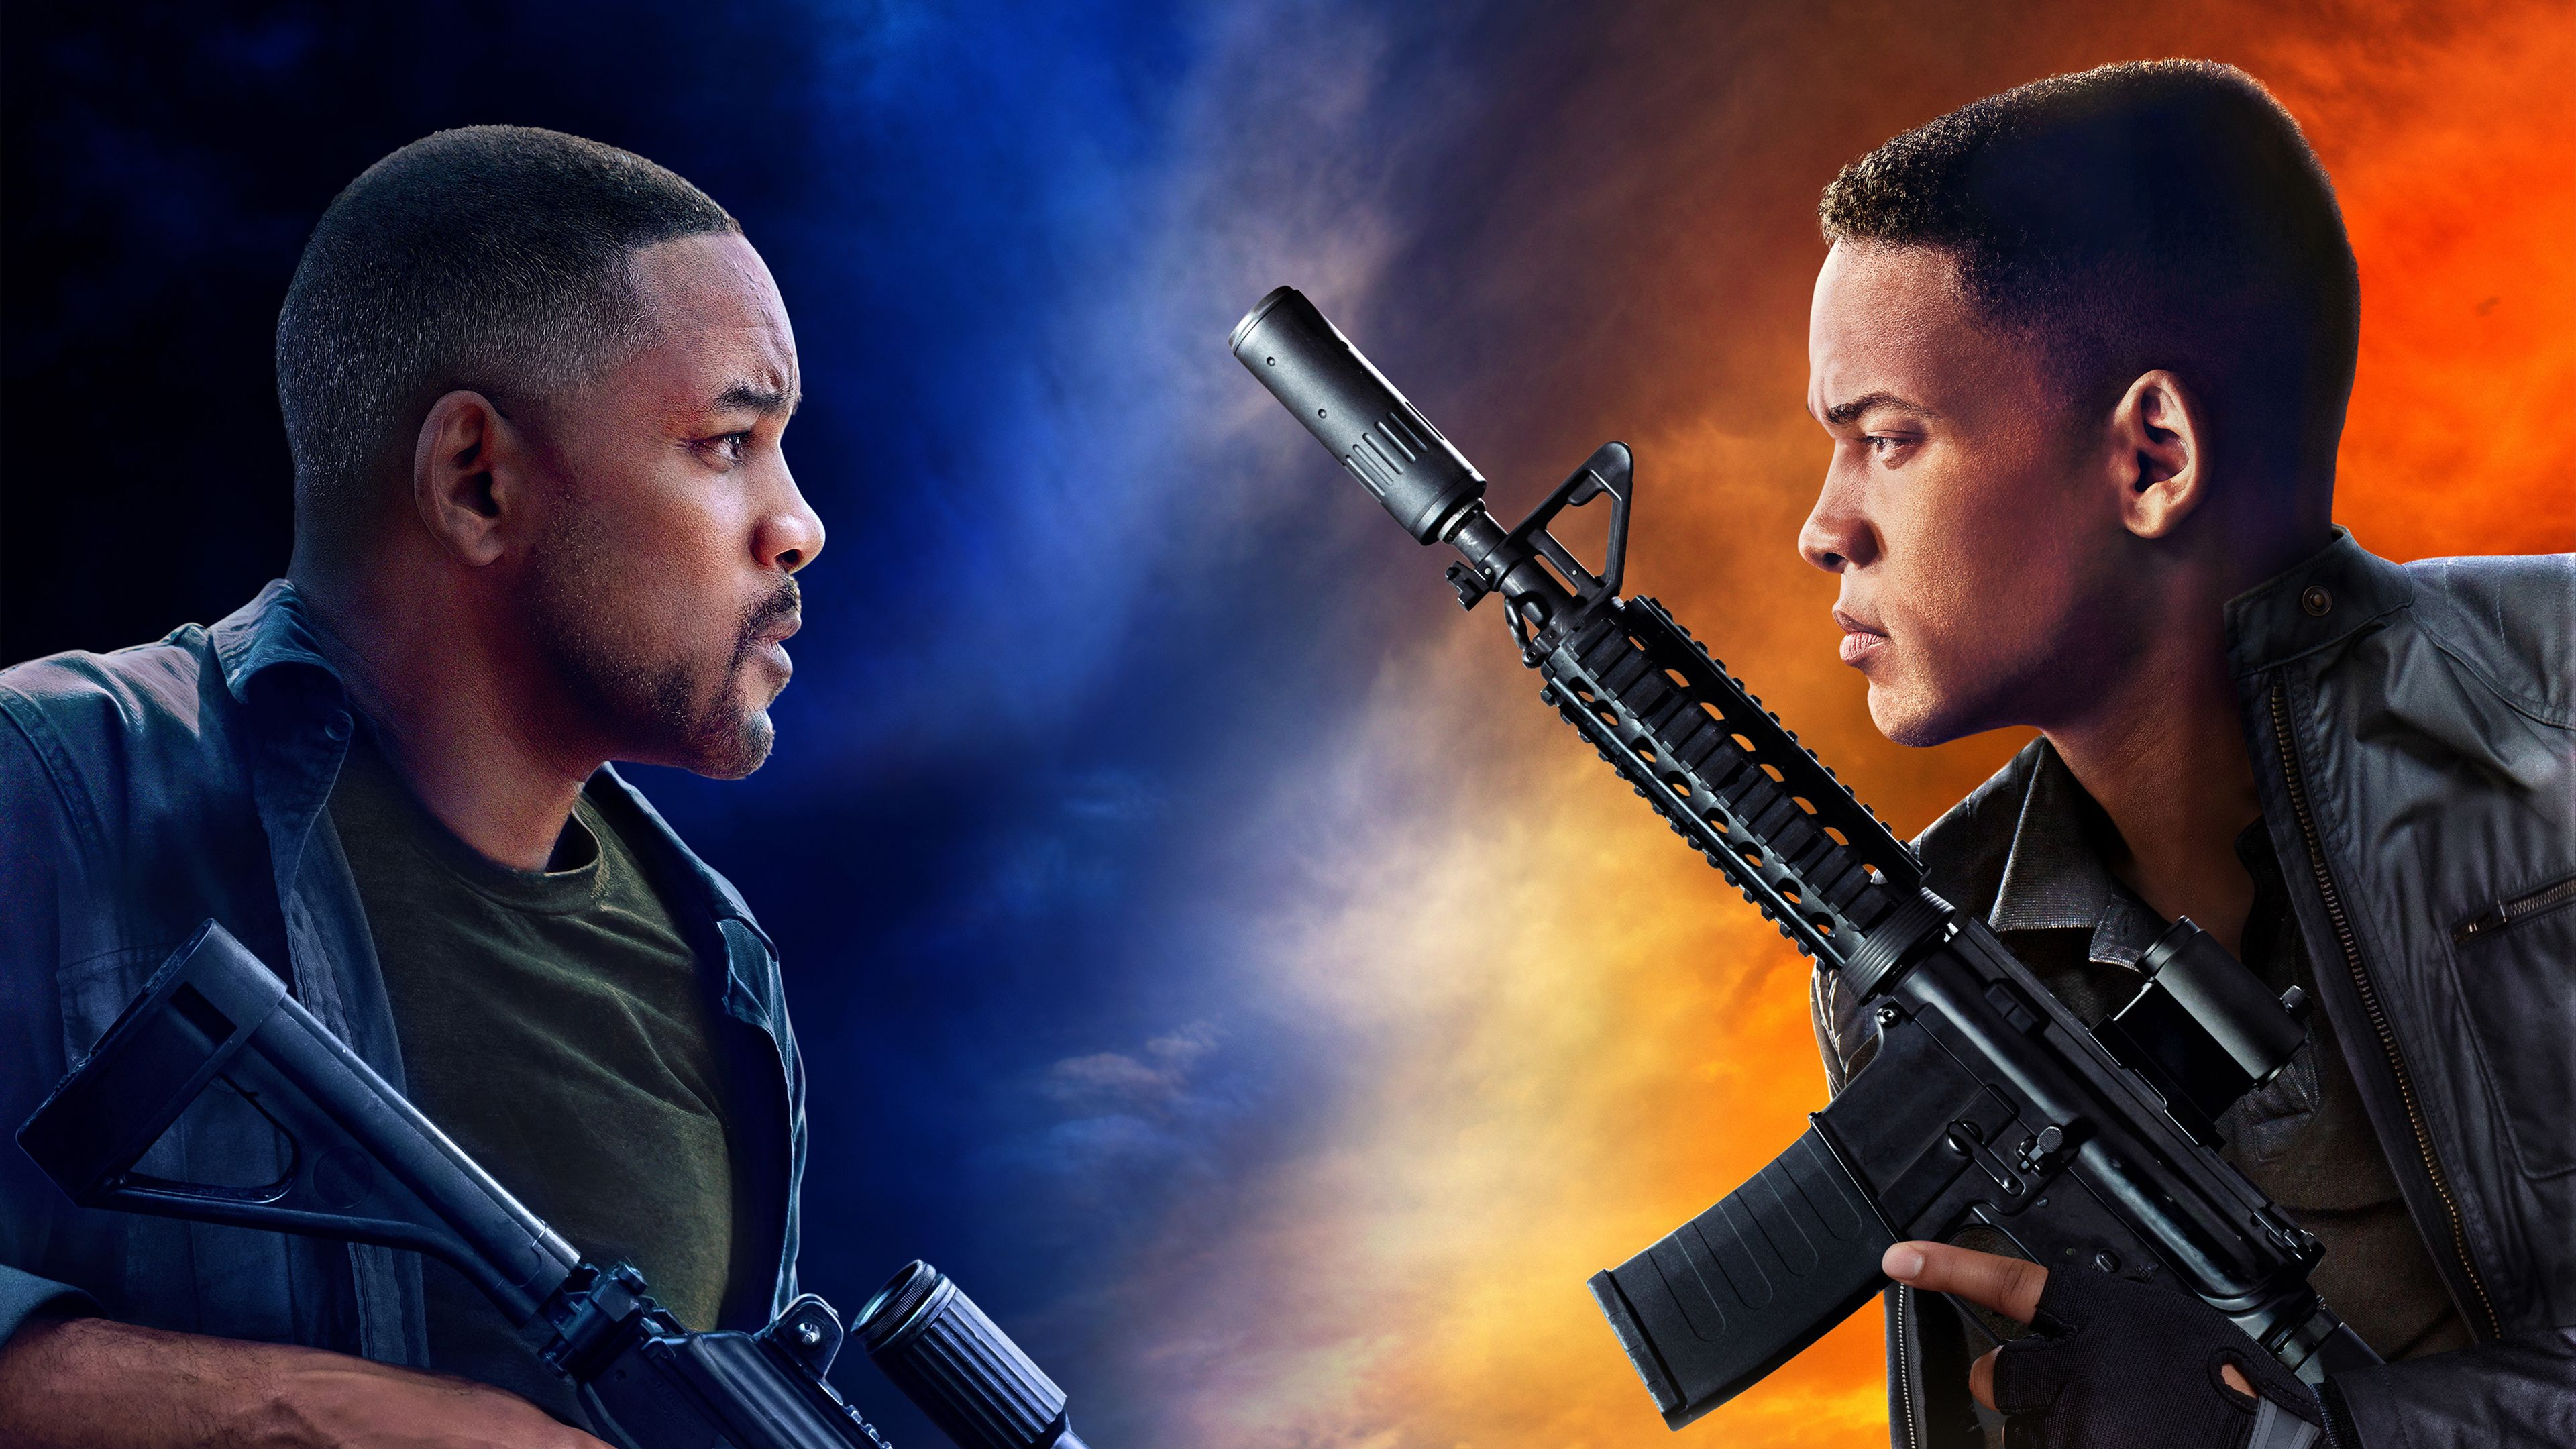 3840x2160 Will Smith in Gemini Man 2019 4K Wallpapers | HD Wallpapers ...